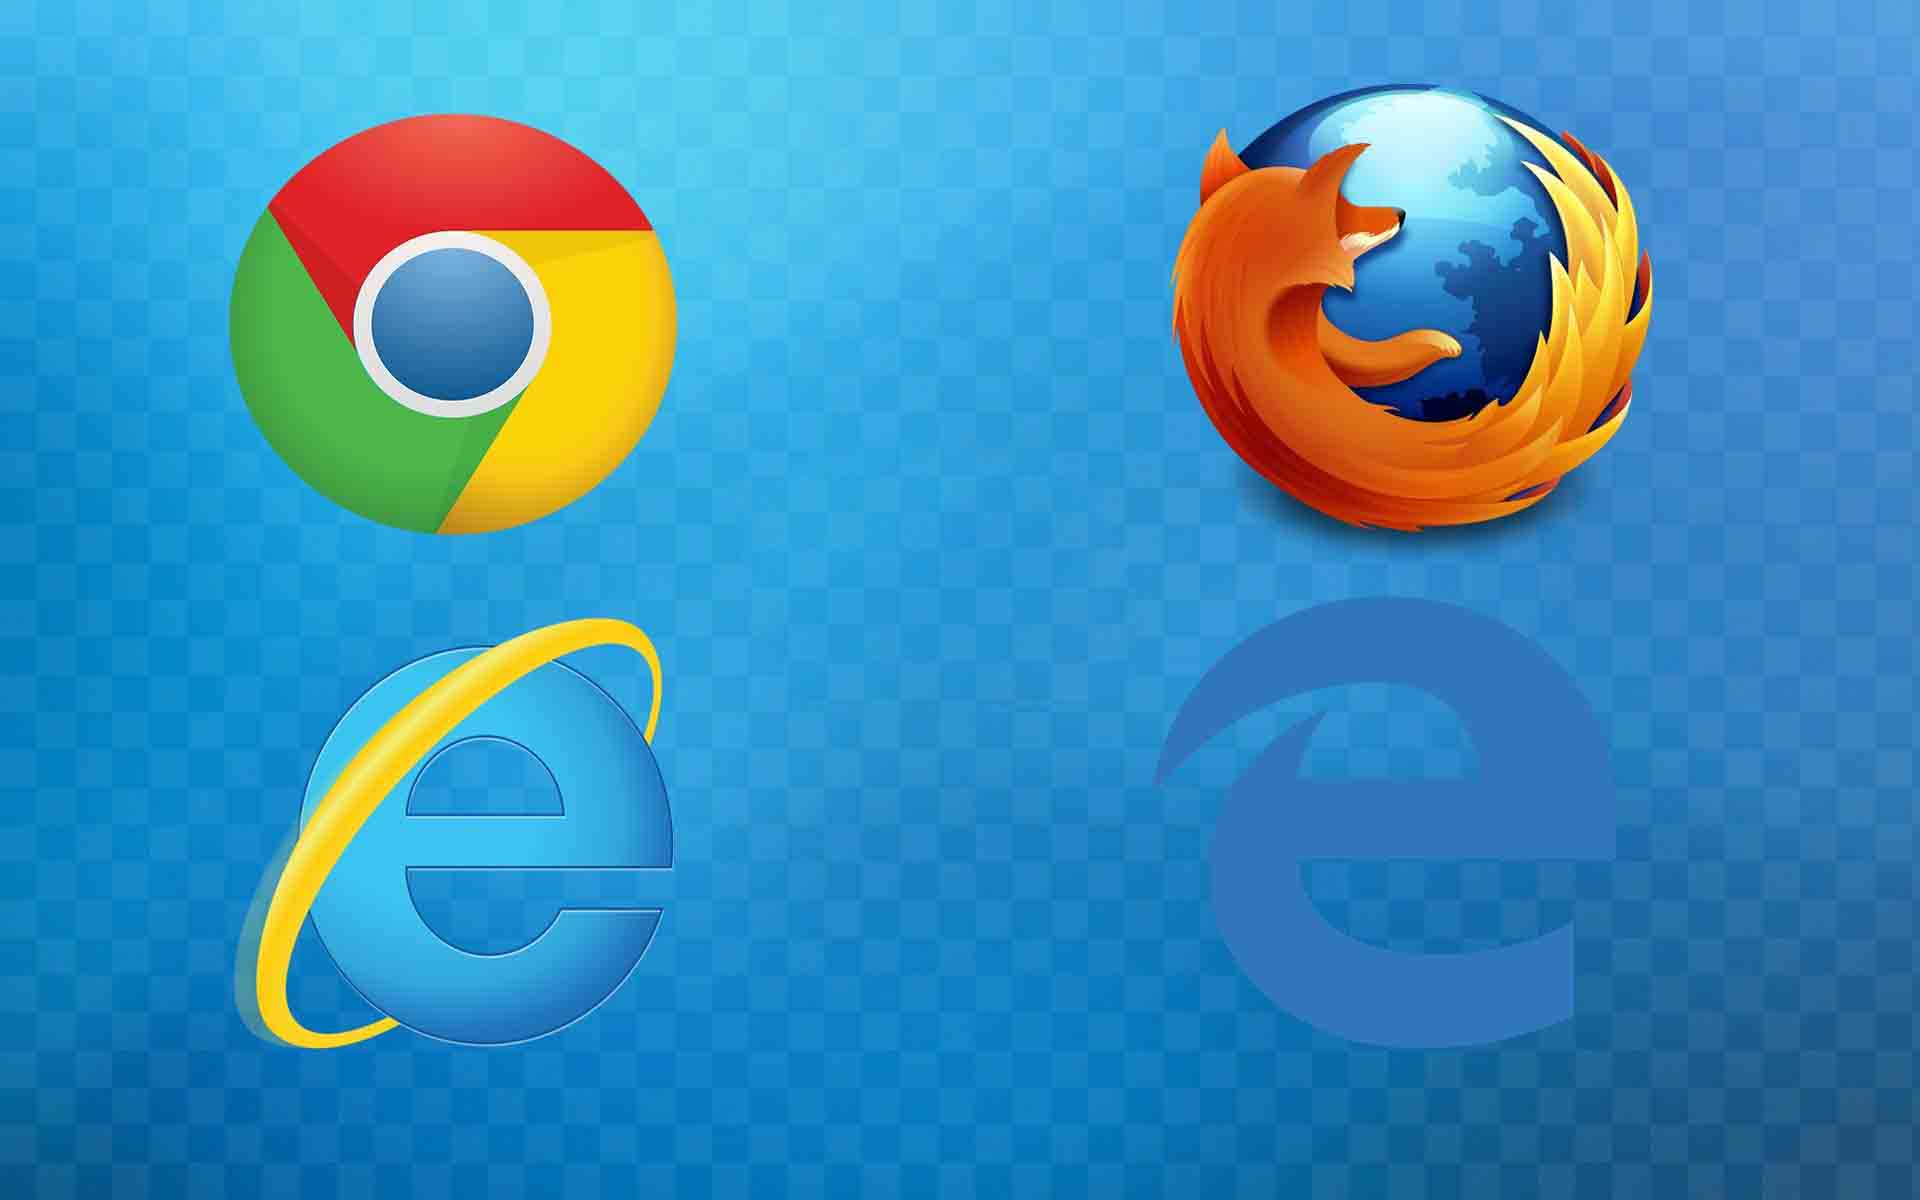 How to Change the download folder in the Browser